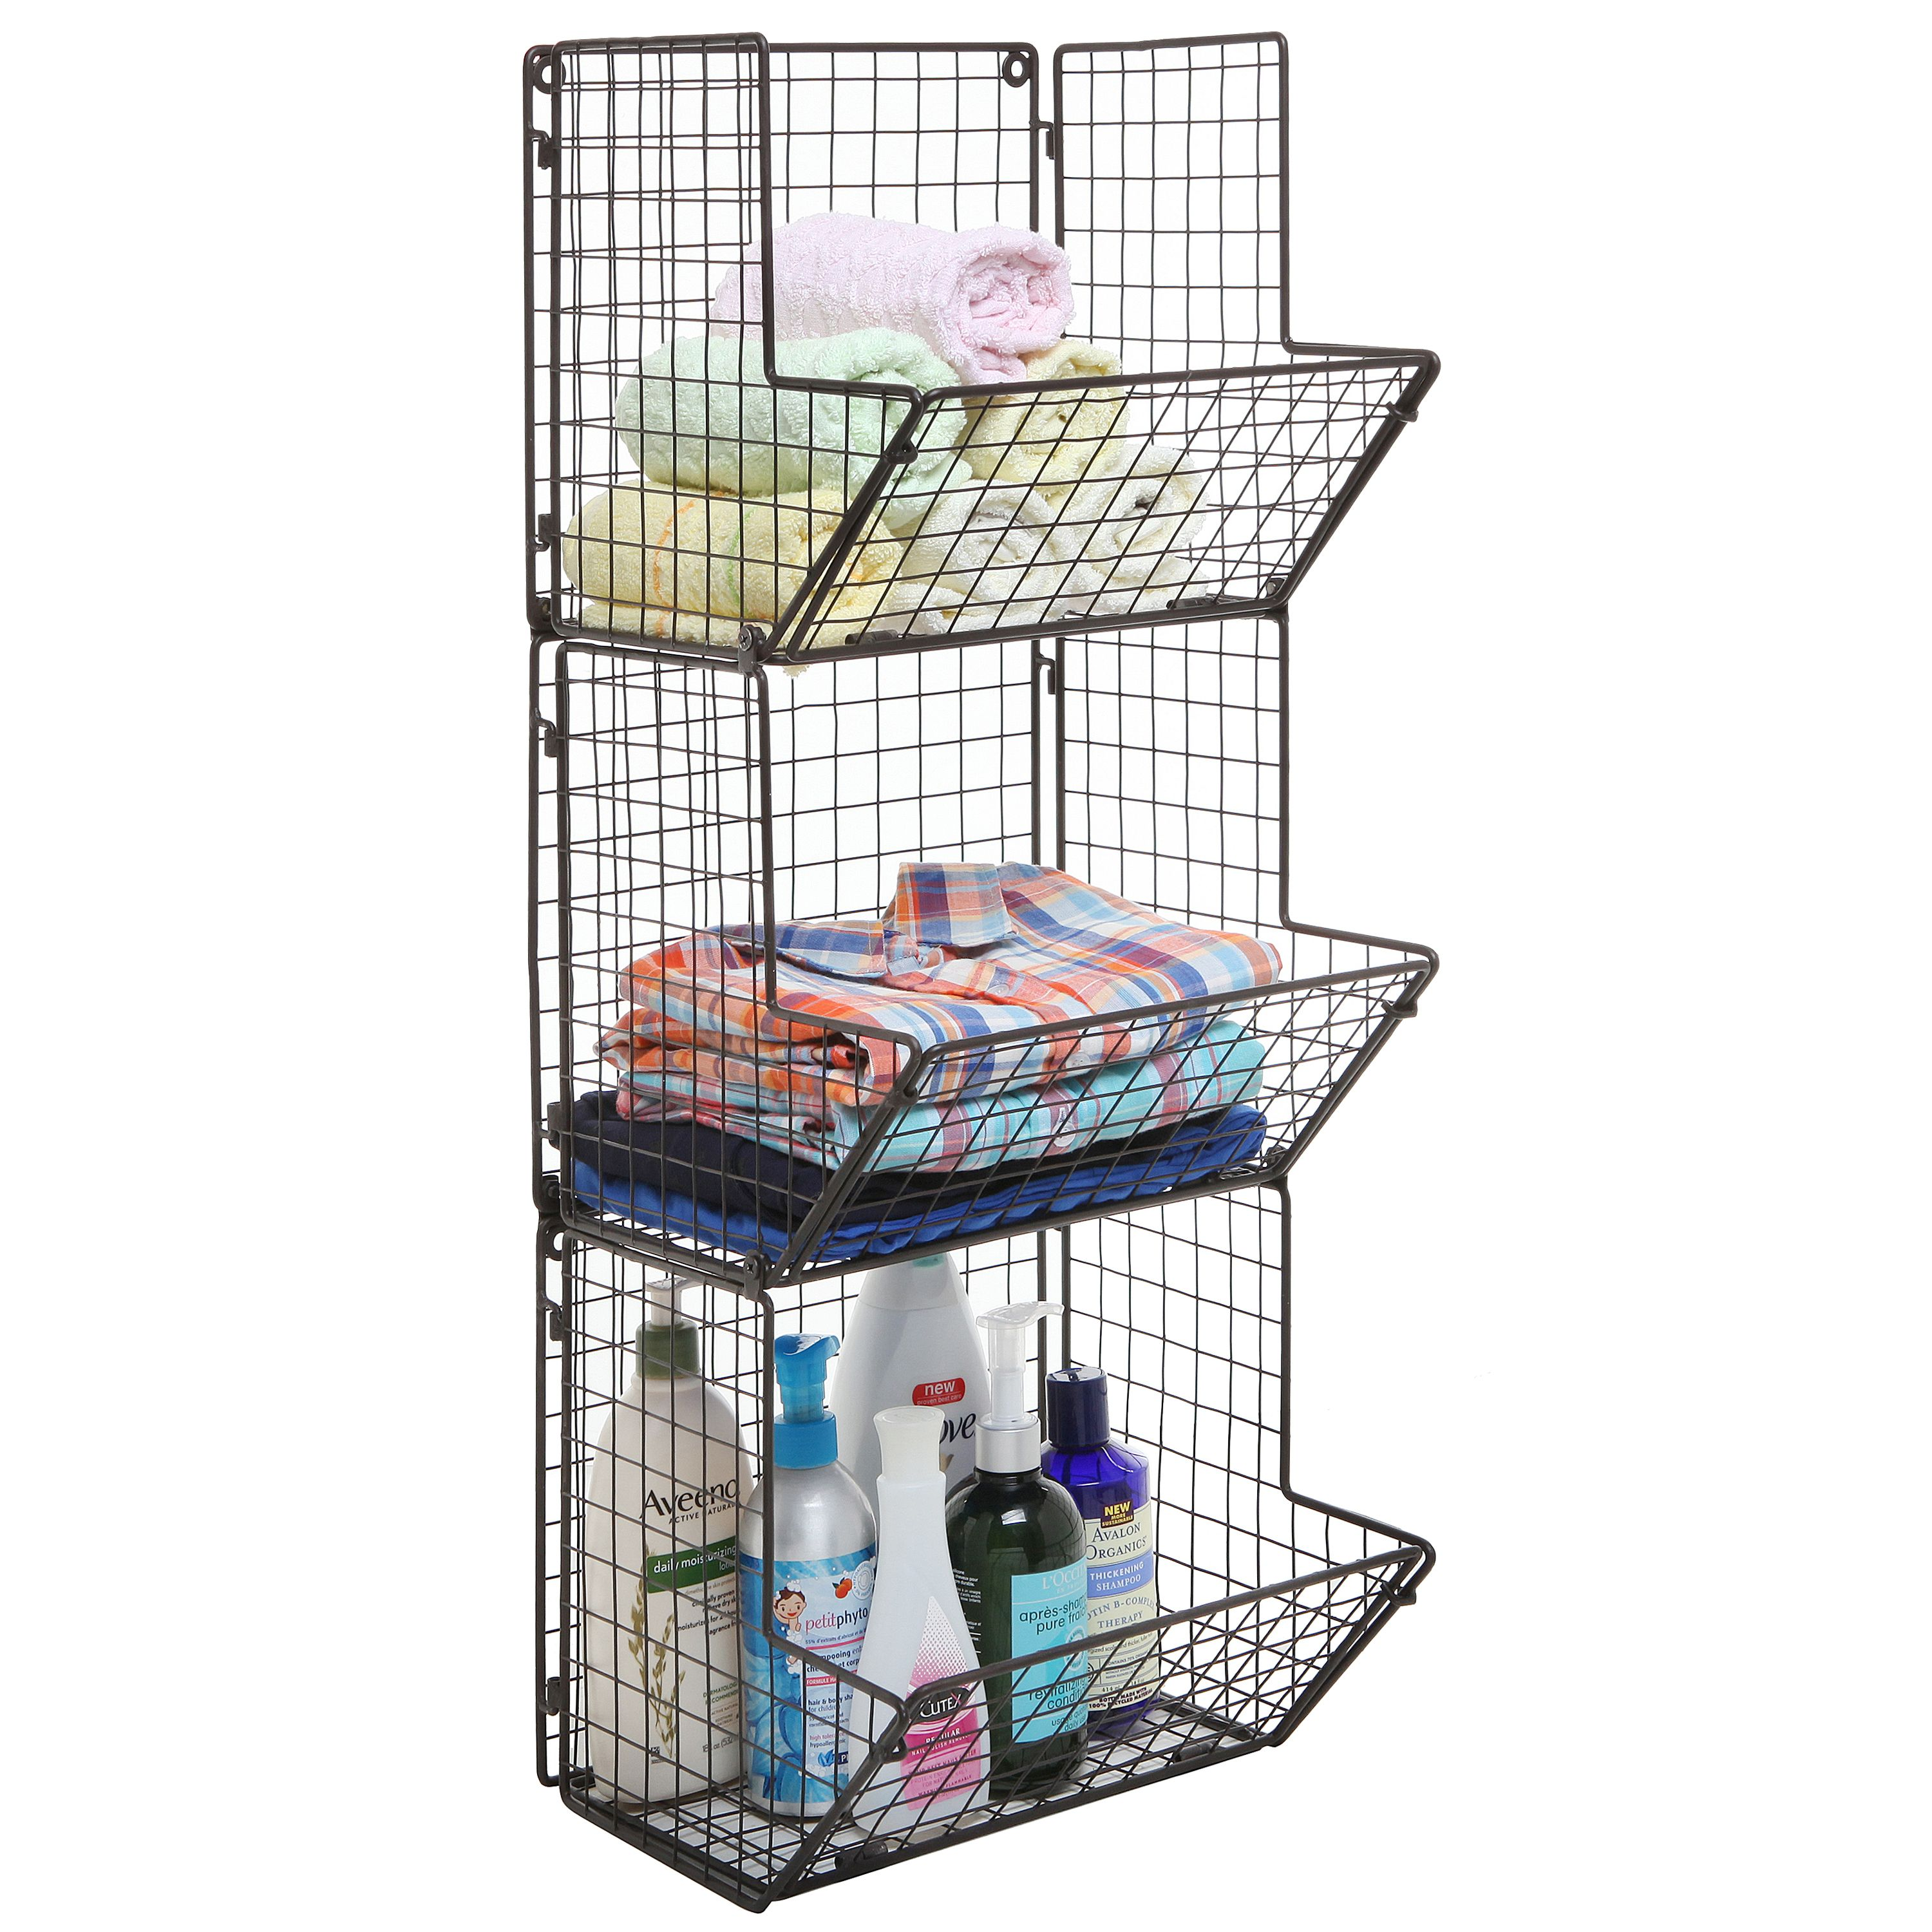 Home In 2020 Wall Mounted Wire Baskets Towel Basket Baskets On